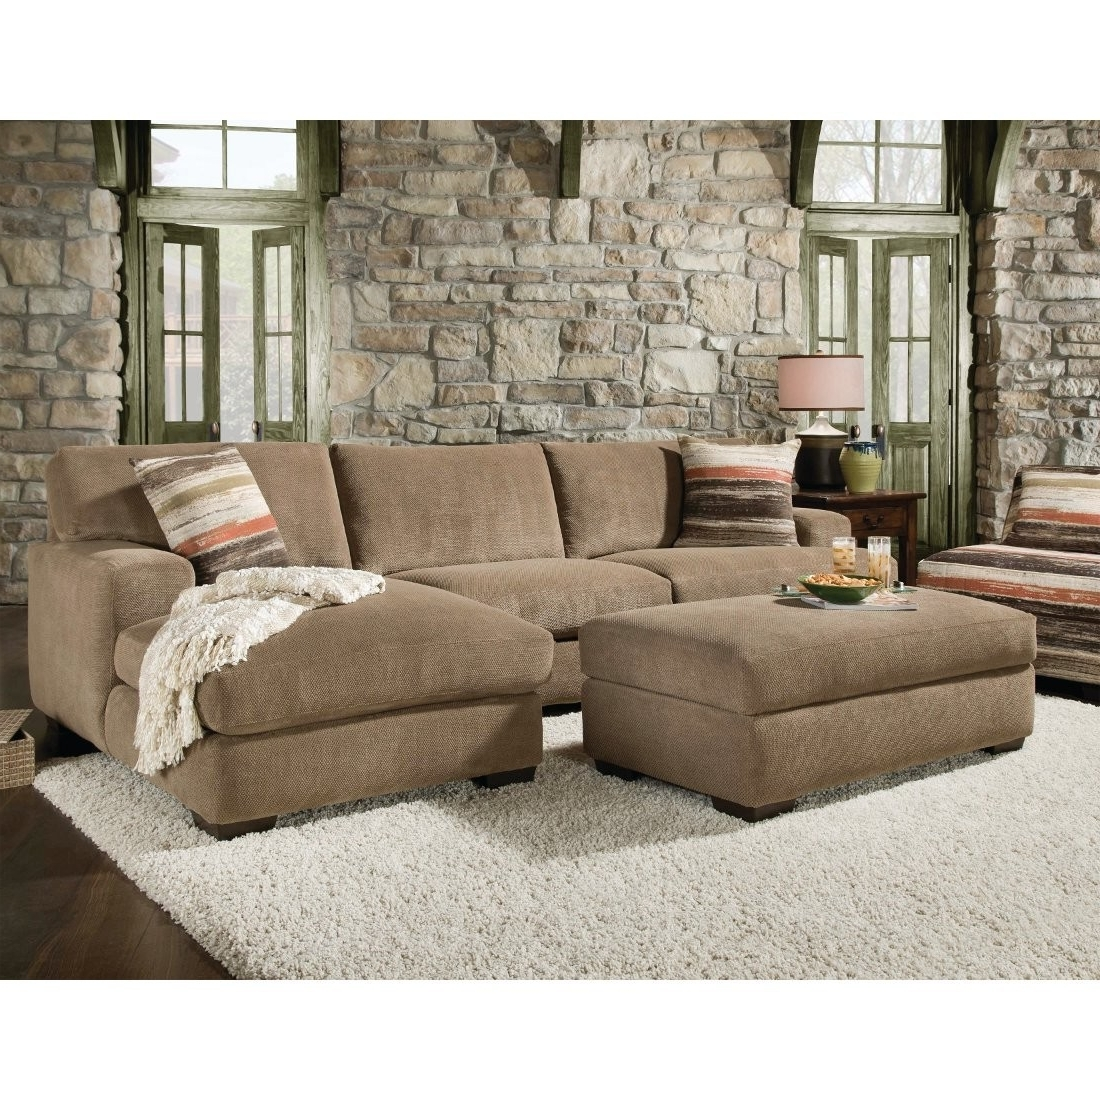 Most Popular Beautiful Sectional Sofa With Chaise And Ottoman Pictures Throughout Leather Sectionals With Chaise And Ottoman (View 1 of 20)